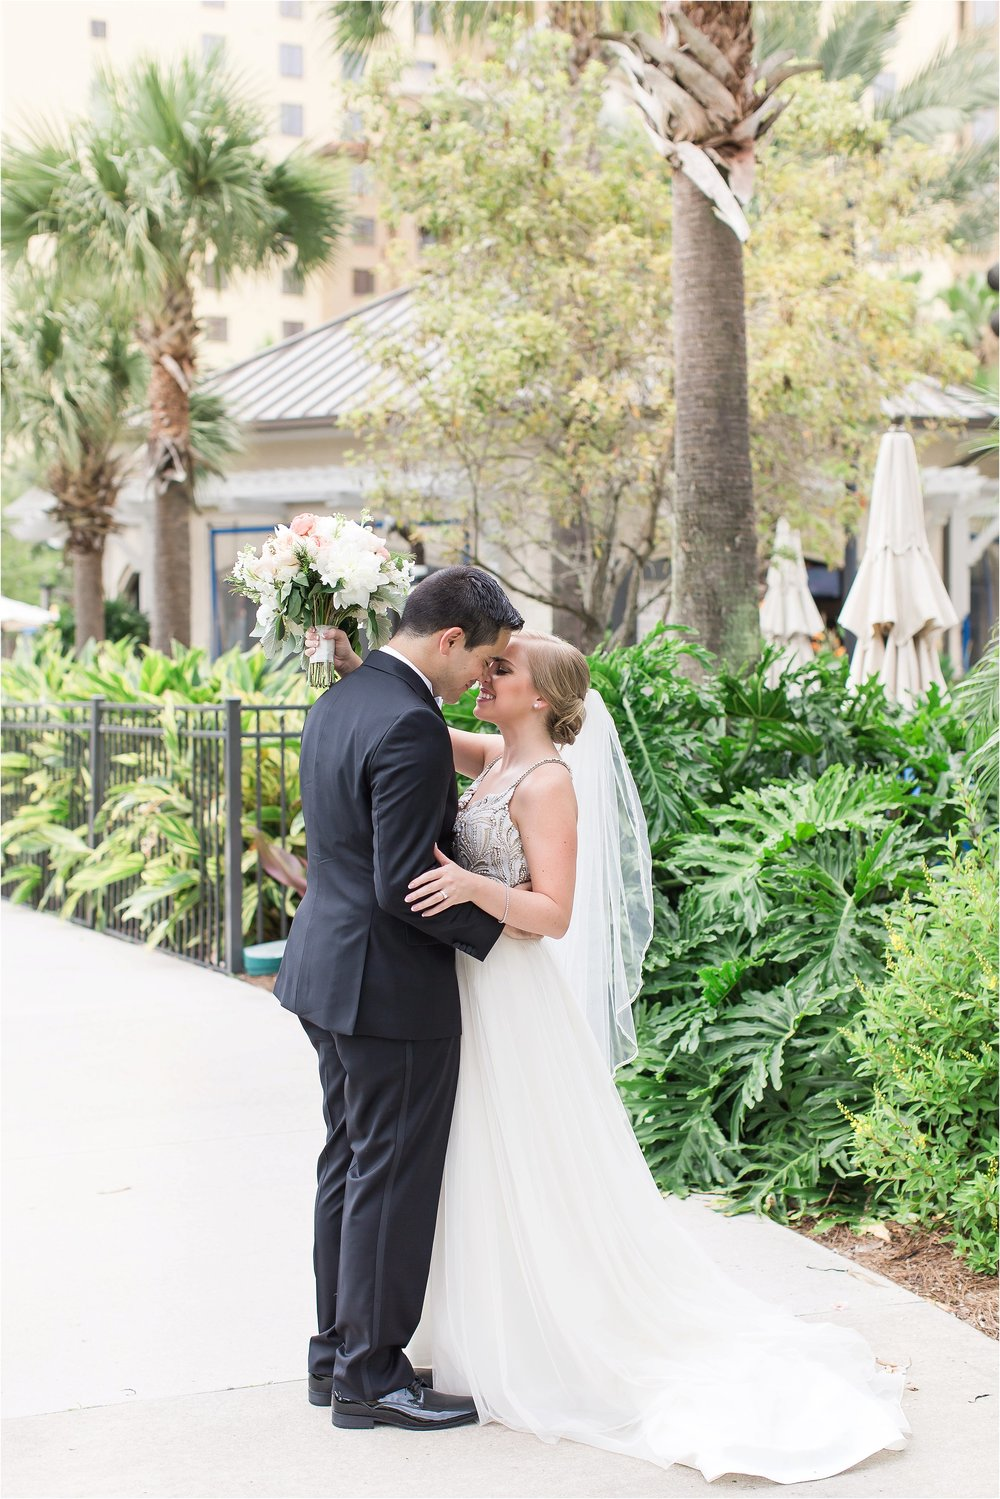 Orlando Wedding - Indoor Wedding